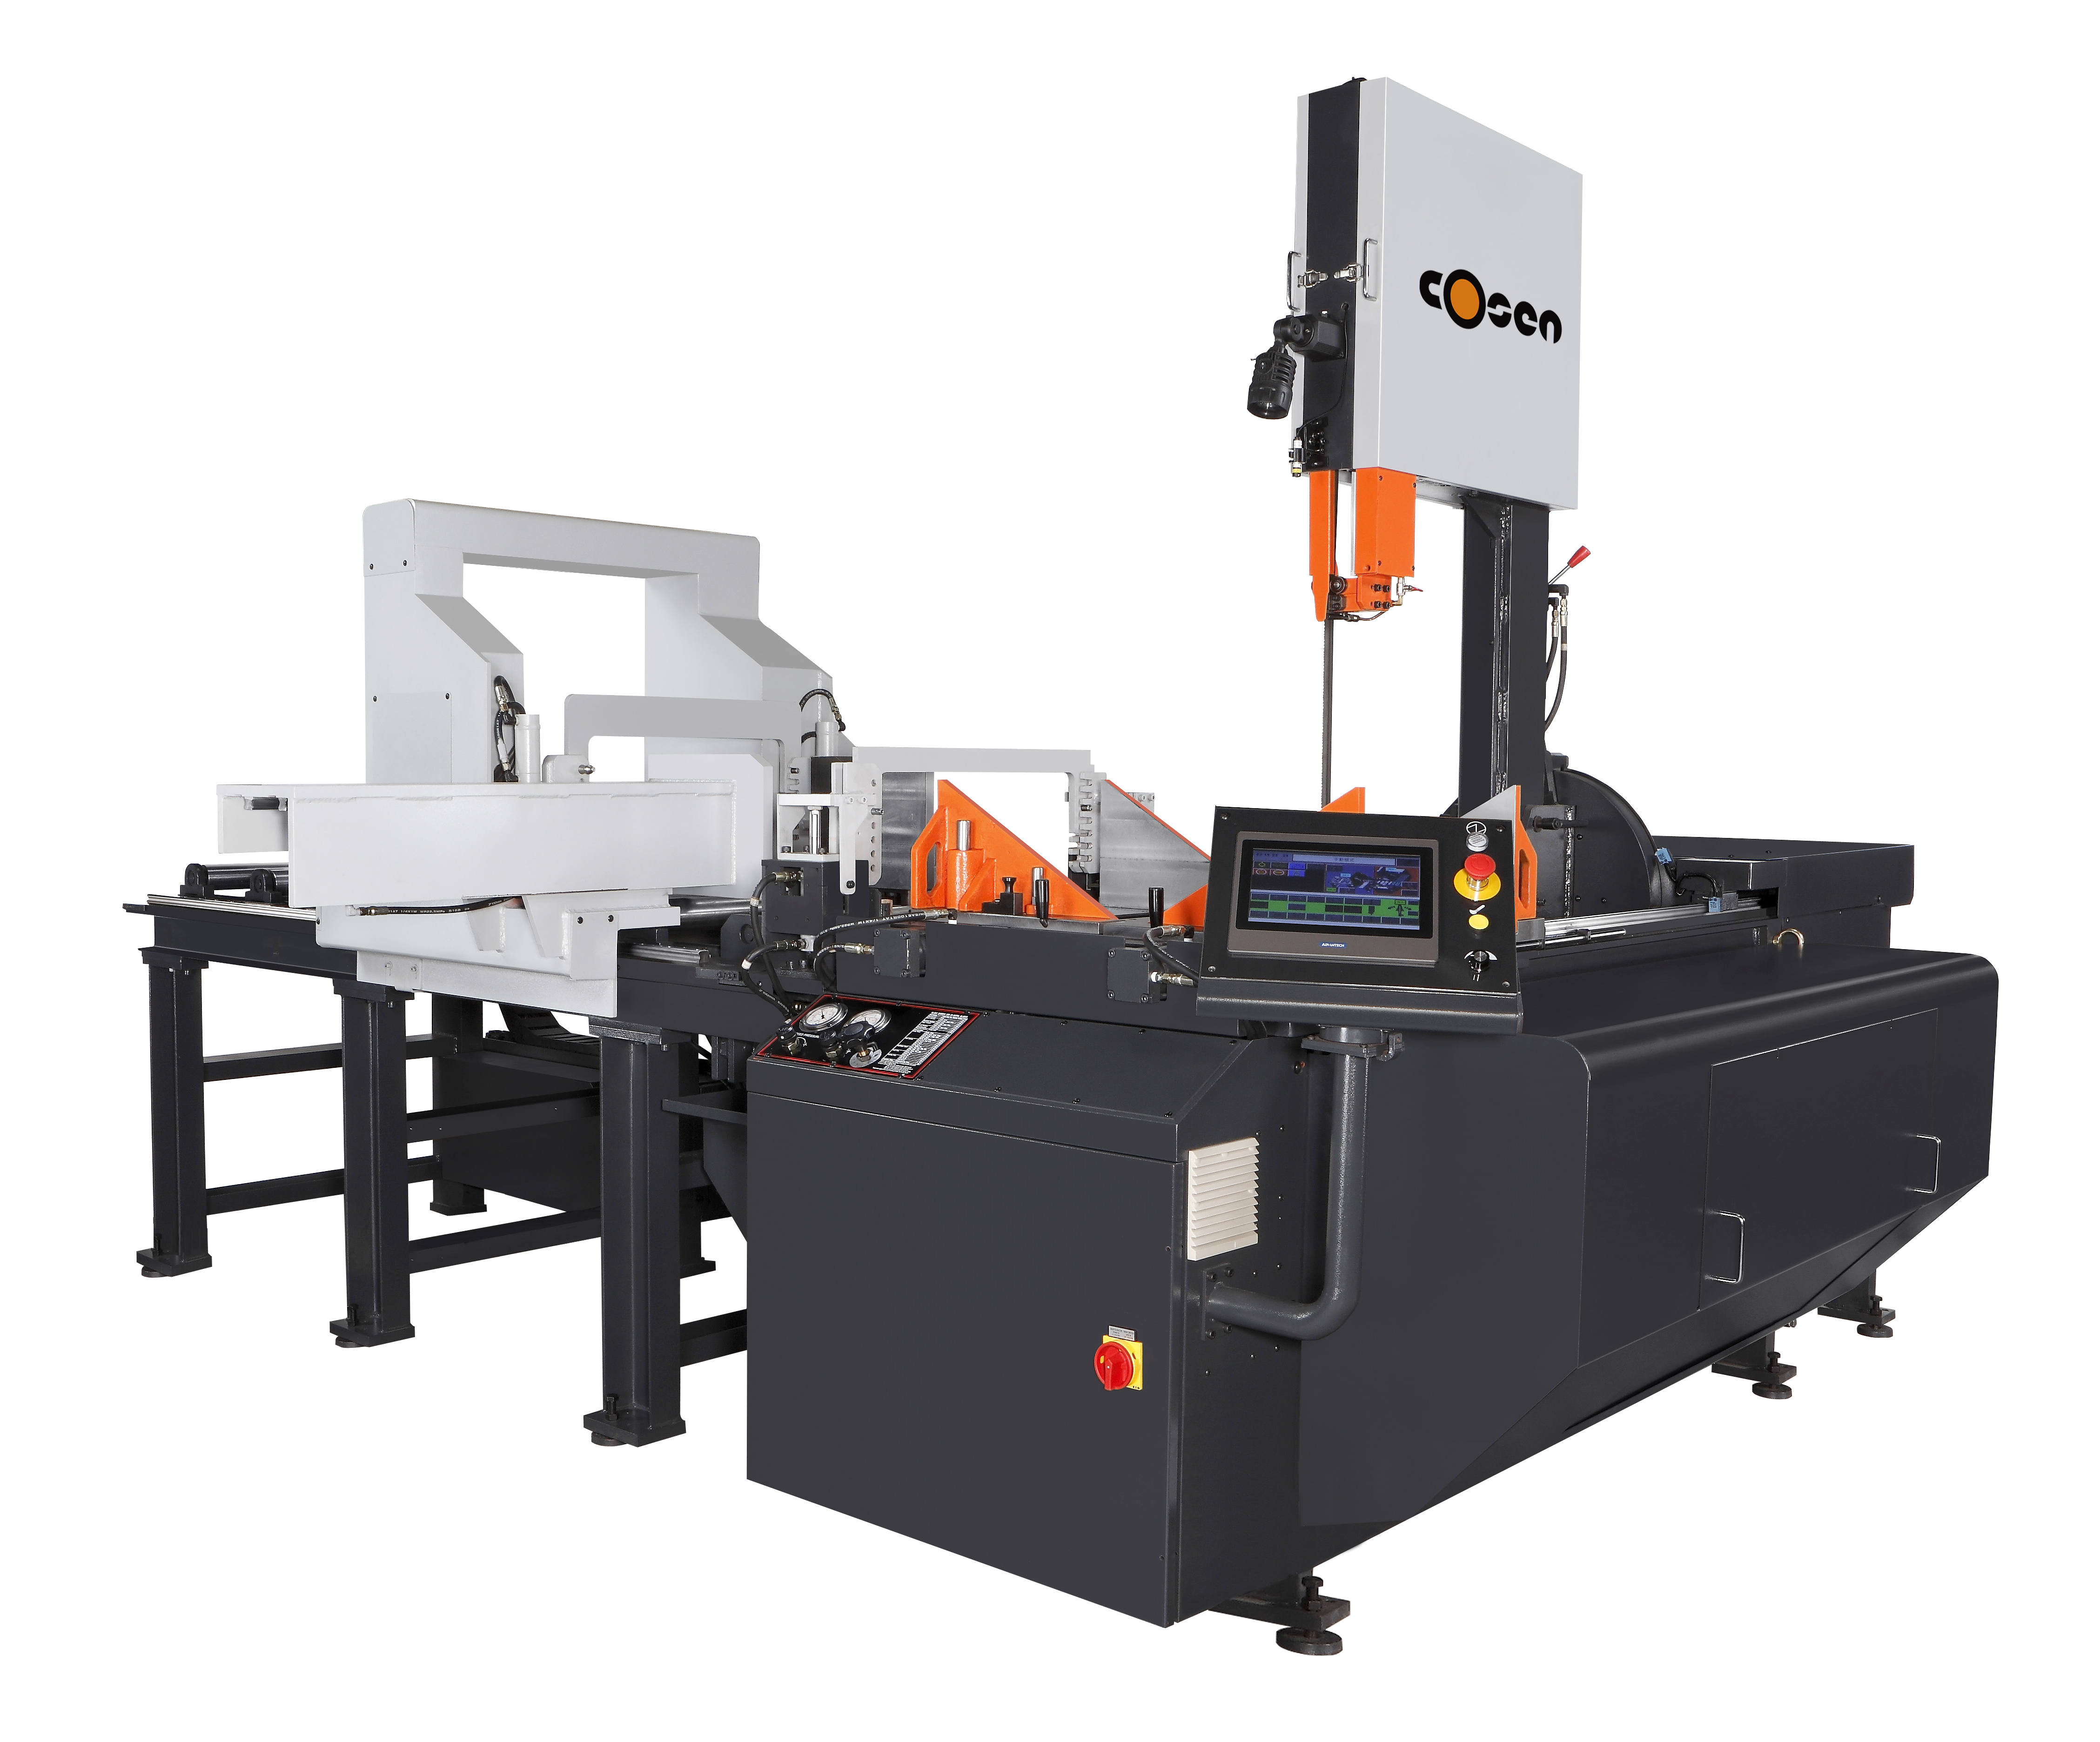 Advanced Band Saw Technology for Complex Cutting